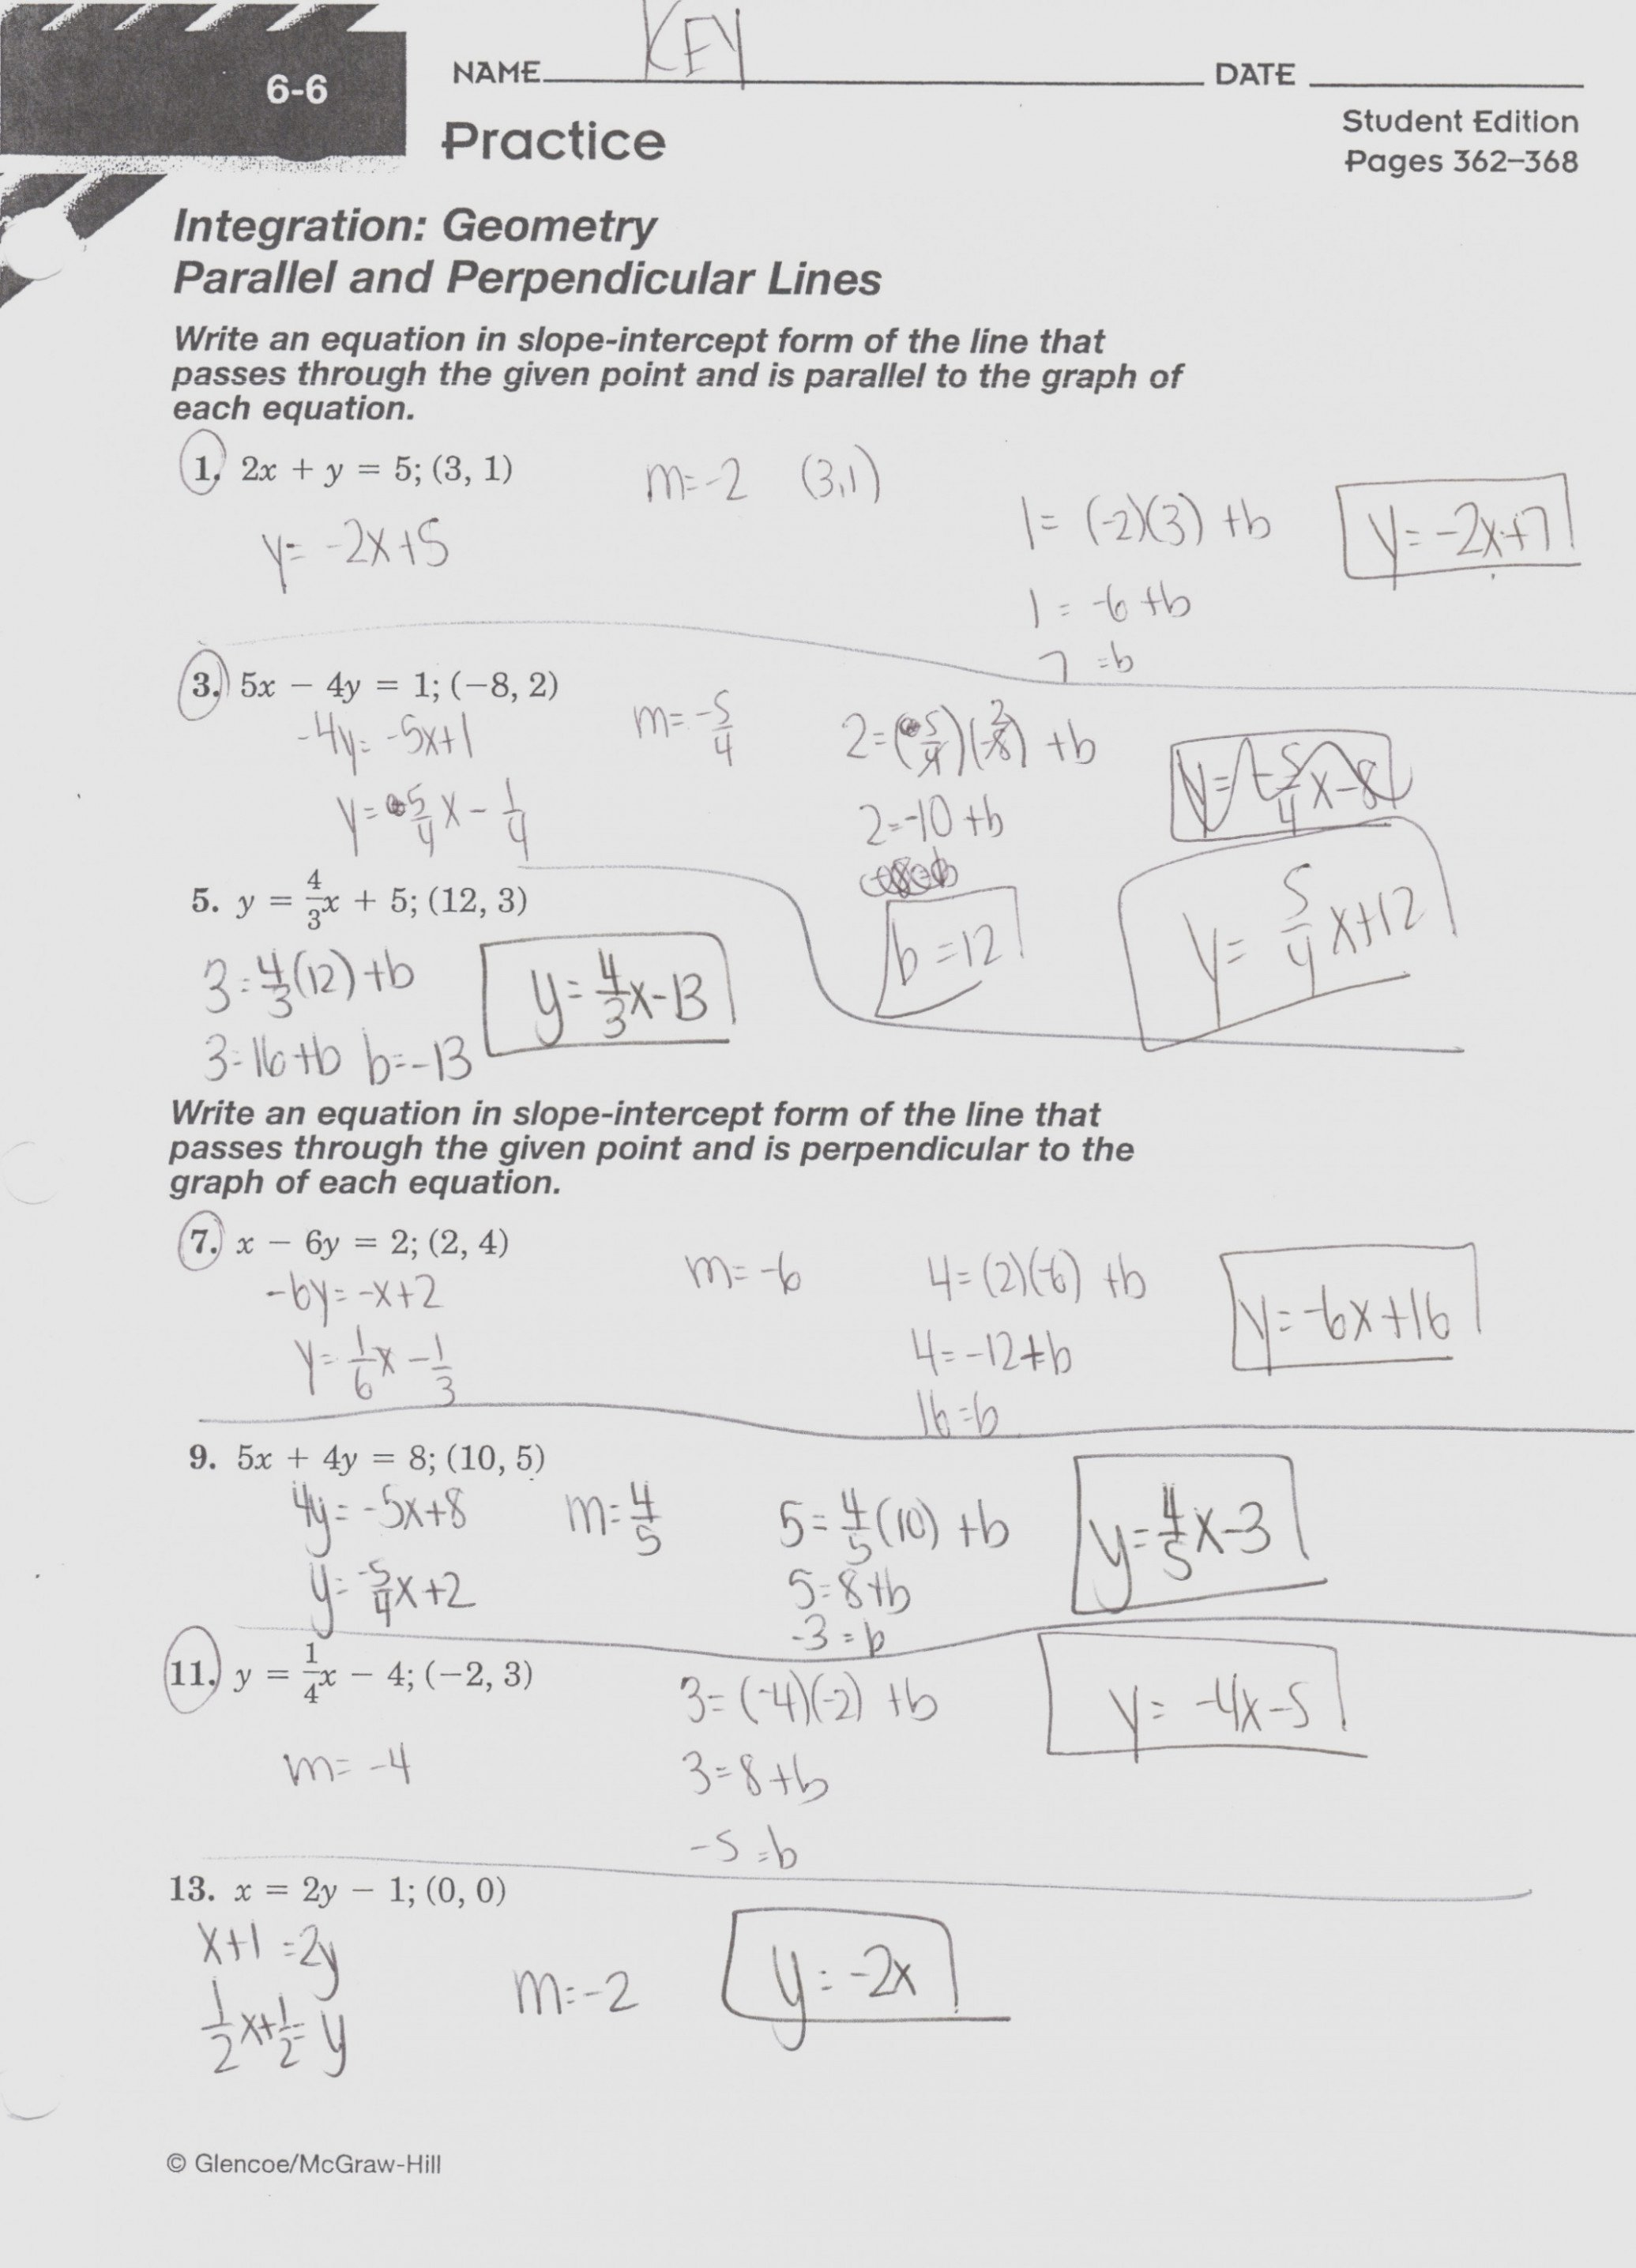 Writing Linear Equations Worksheet Answer Key – Breadandhearth – 12 Pertaining To Writing Linear Equations Worksheet